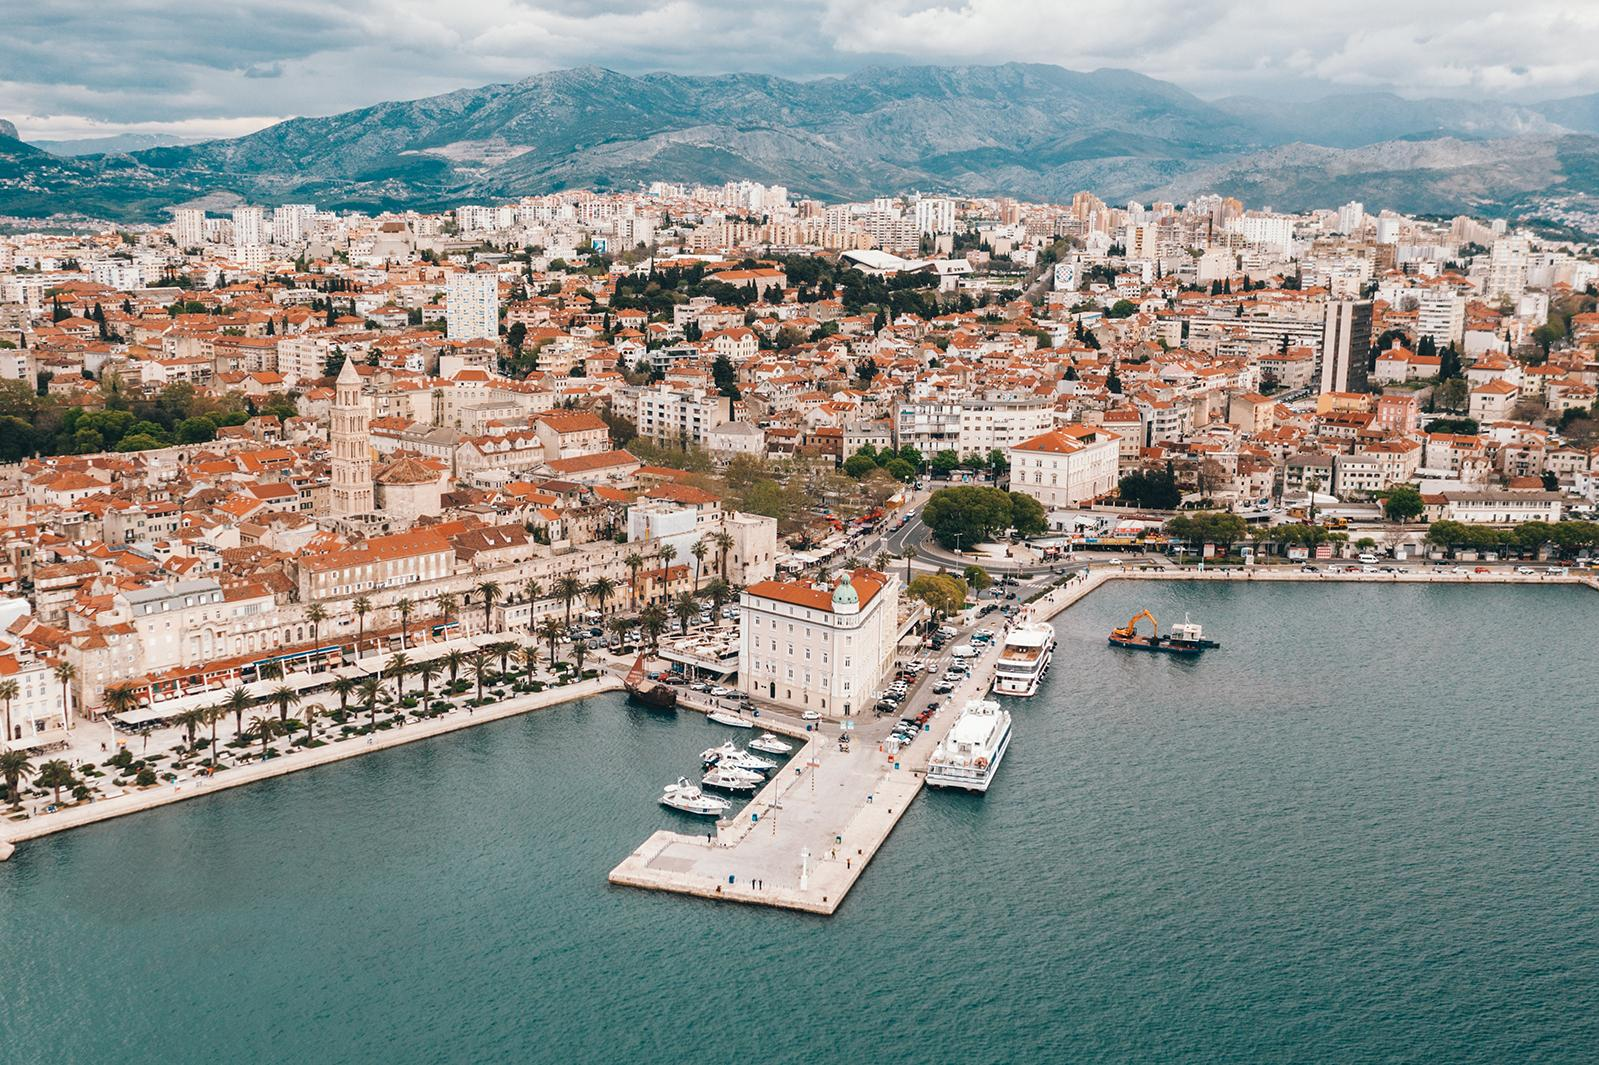 Diocletian Palace in Split Croatia: From residential palace to a city within a city